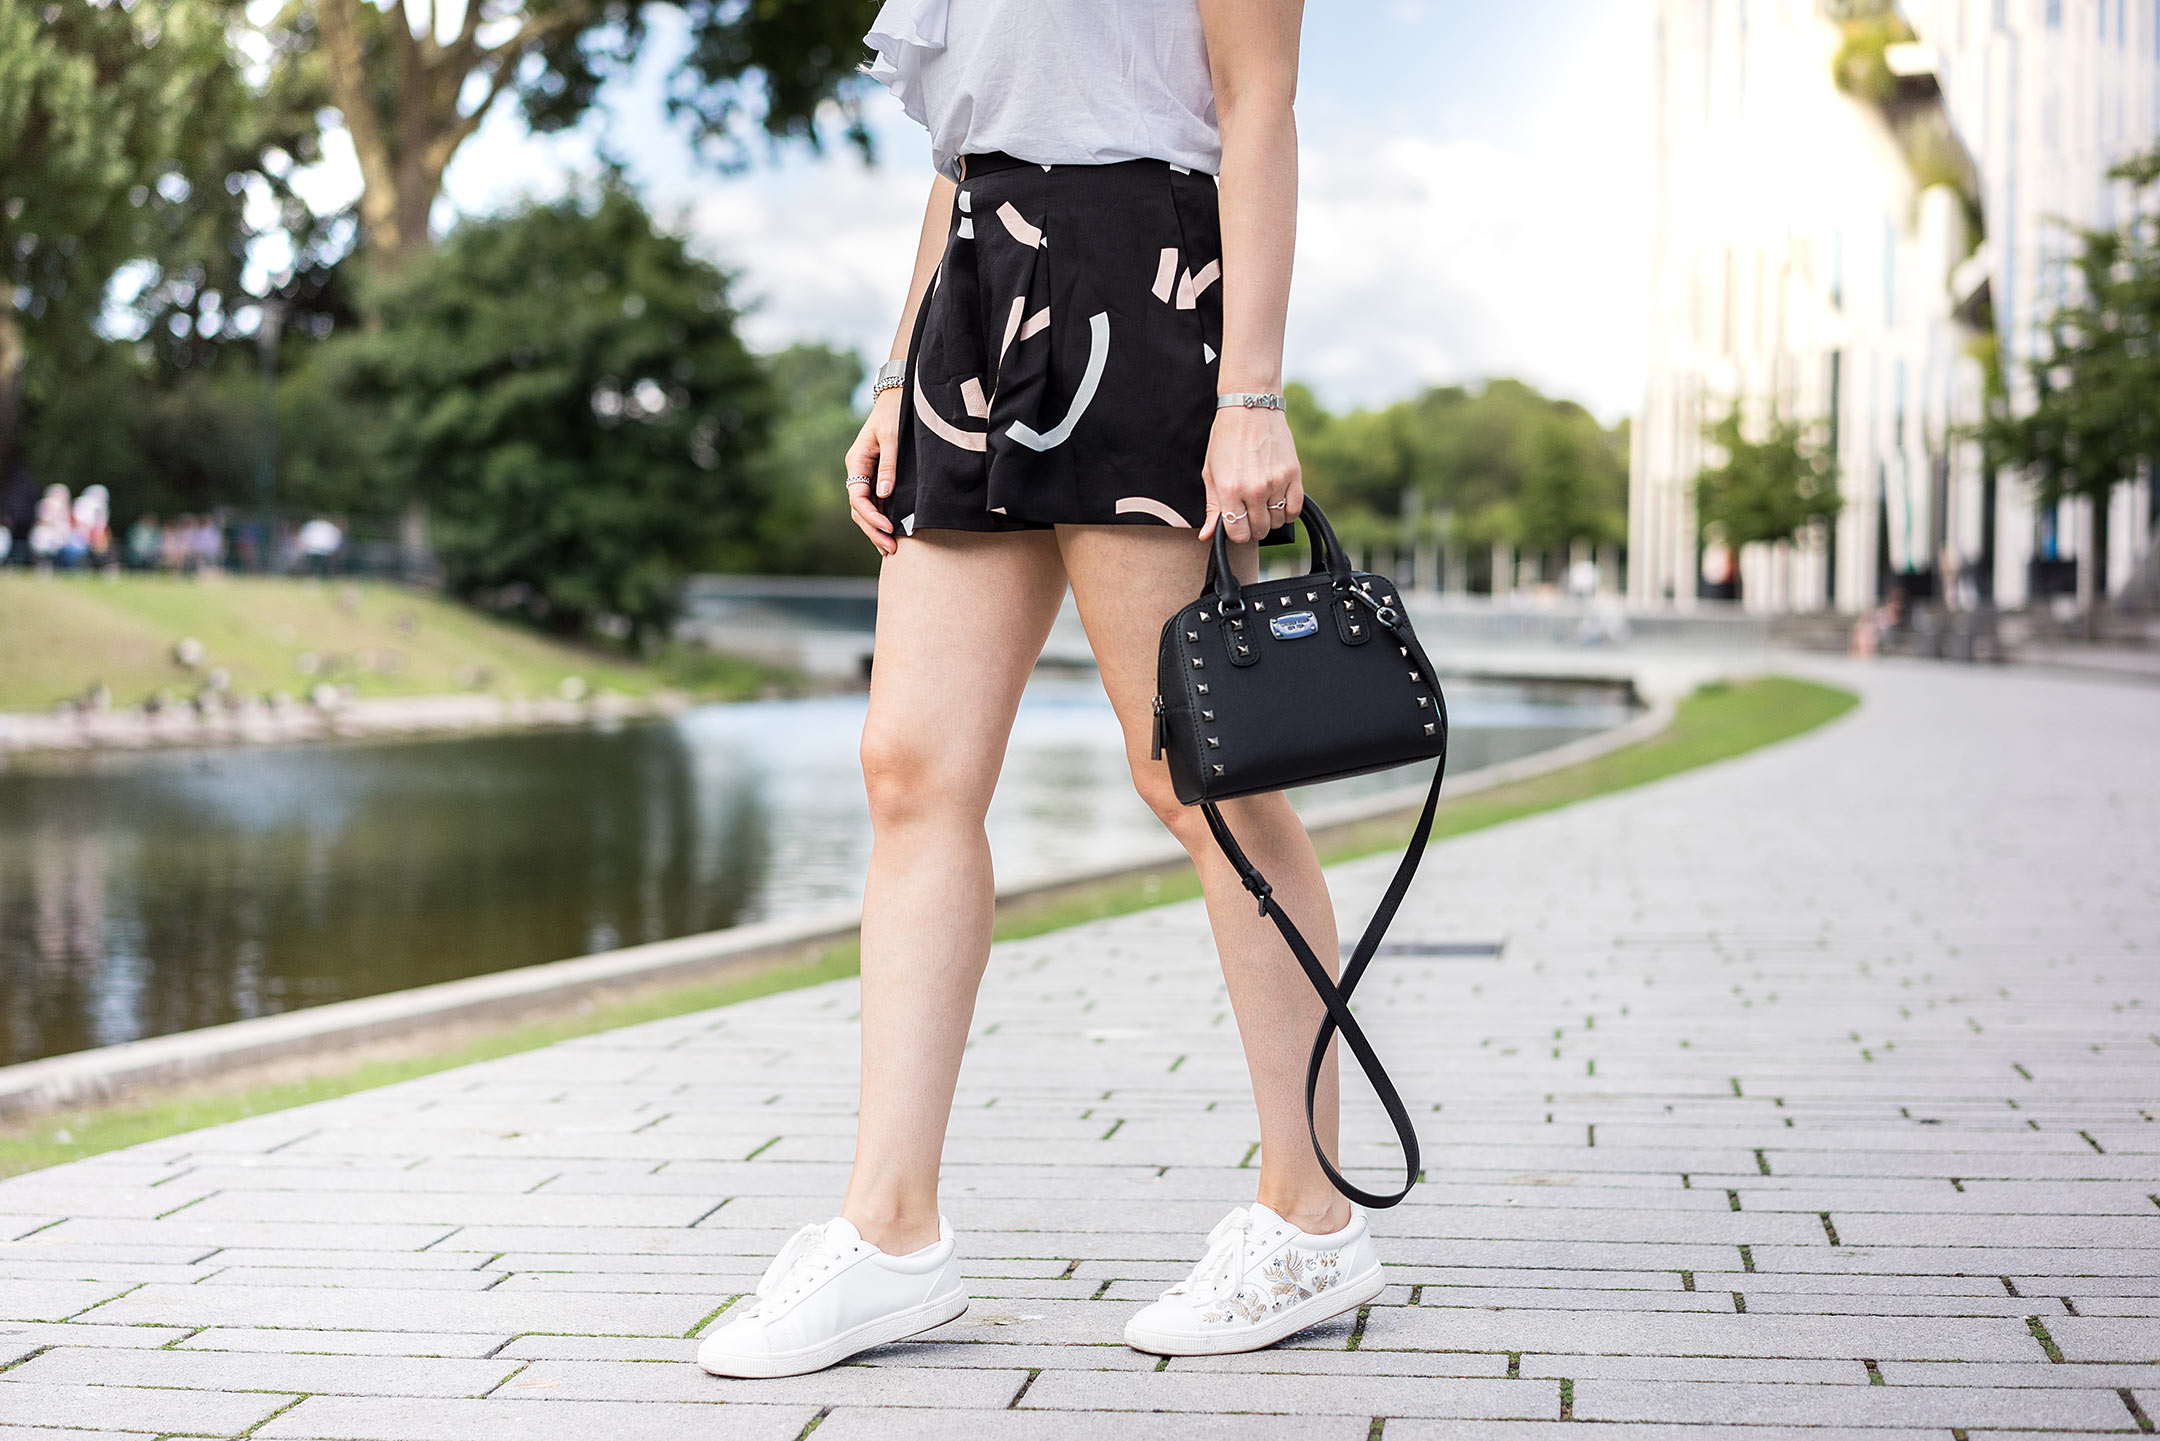 Sneakers Outfit Shorts Sommer Inspiration Blog Düsseldorf Sunnyinga